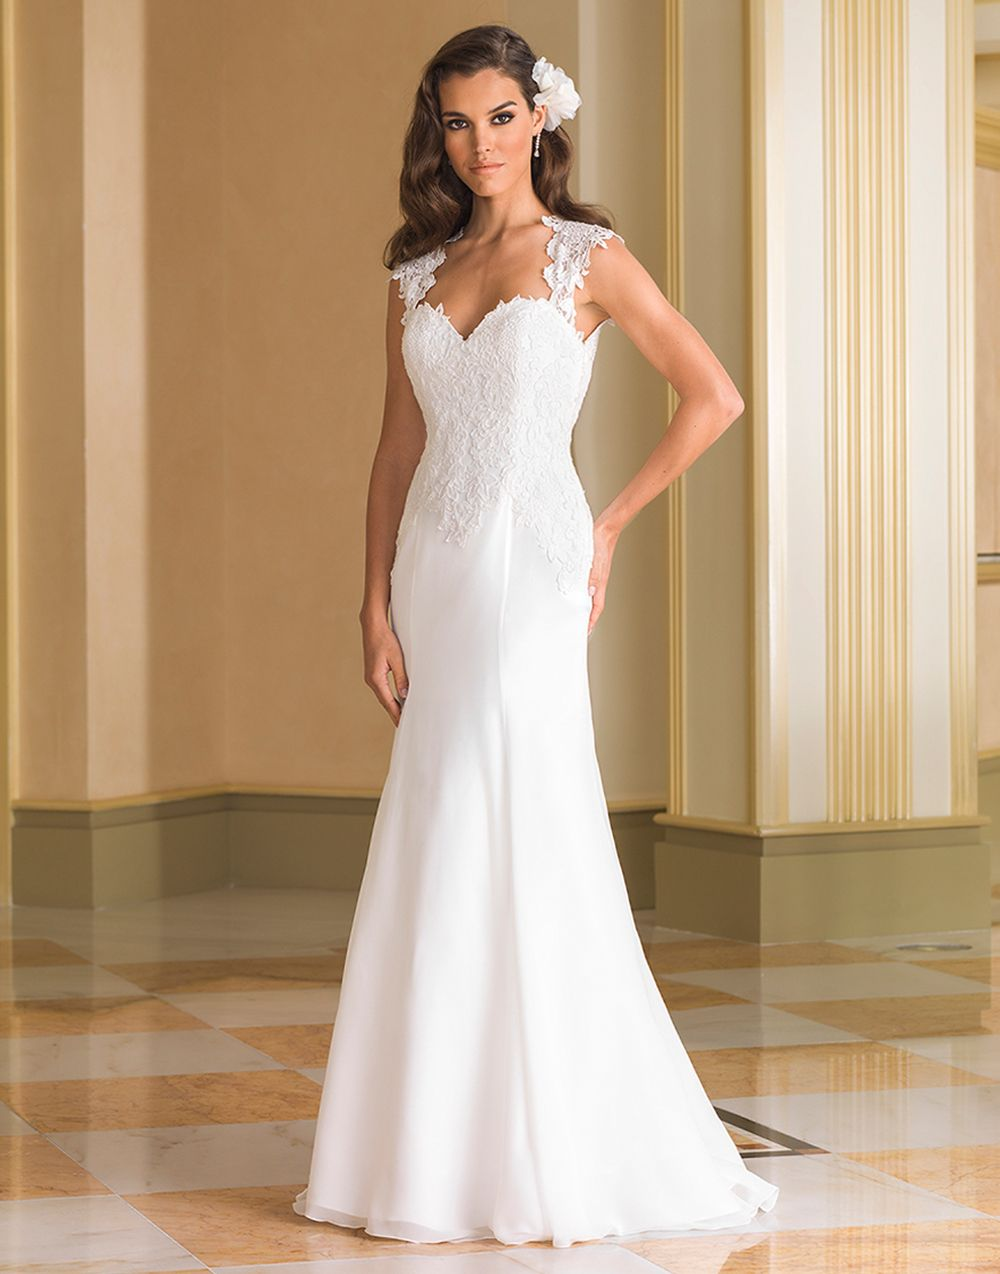 Justin Alexander wedding dresses style 8867 | Lace applique, Wedding ...